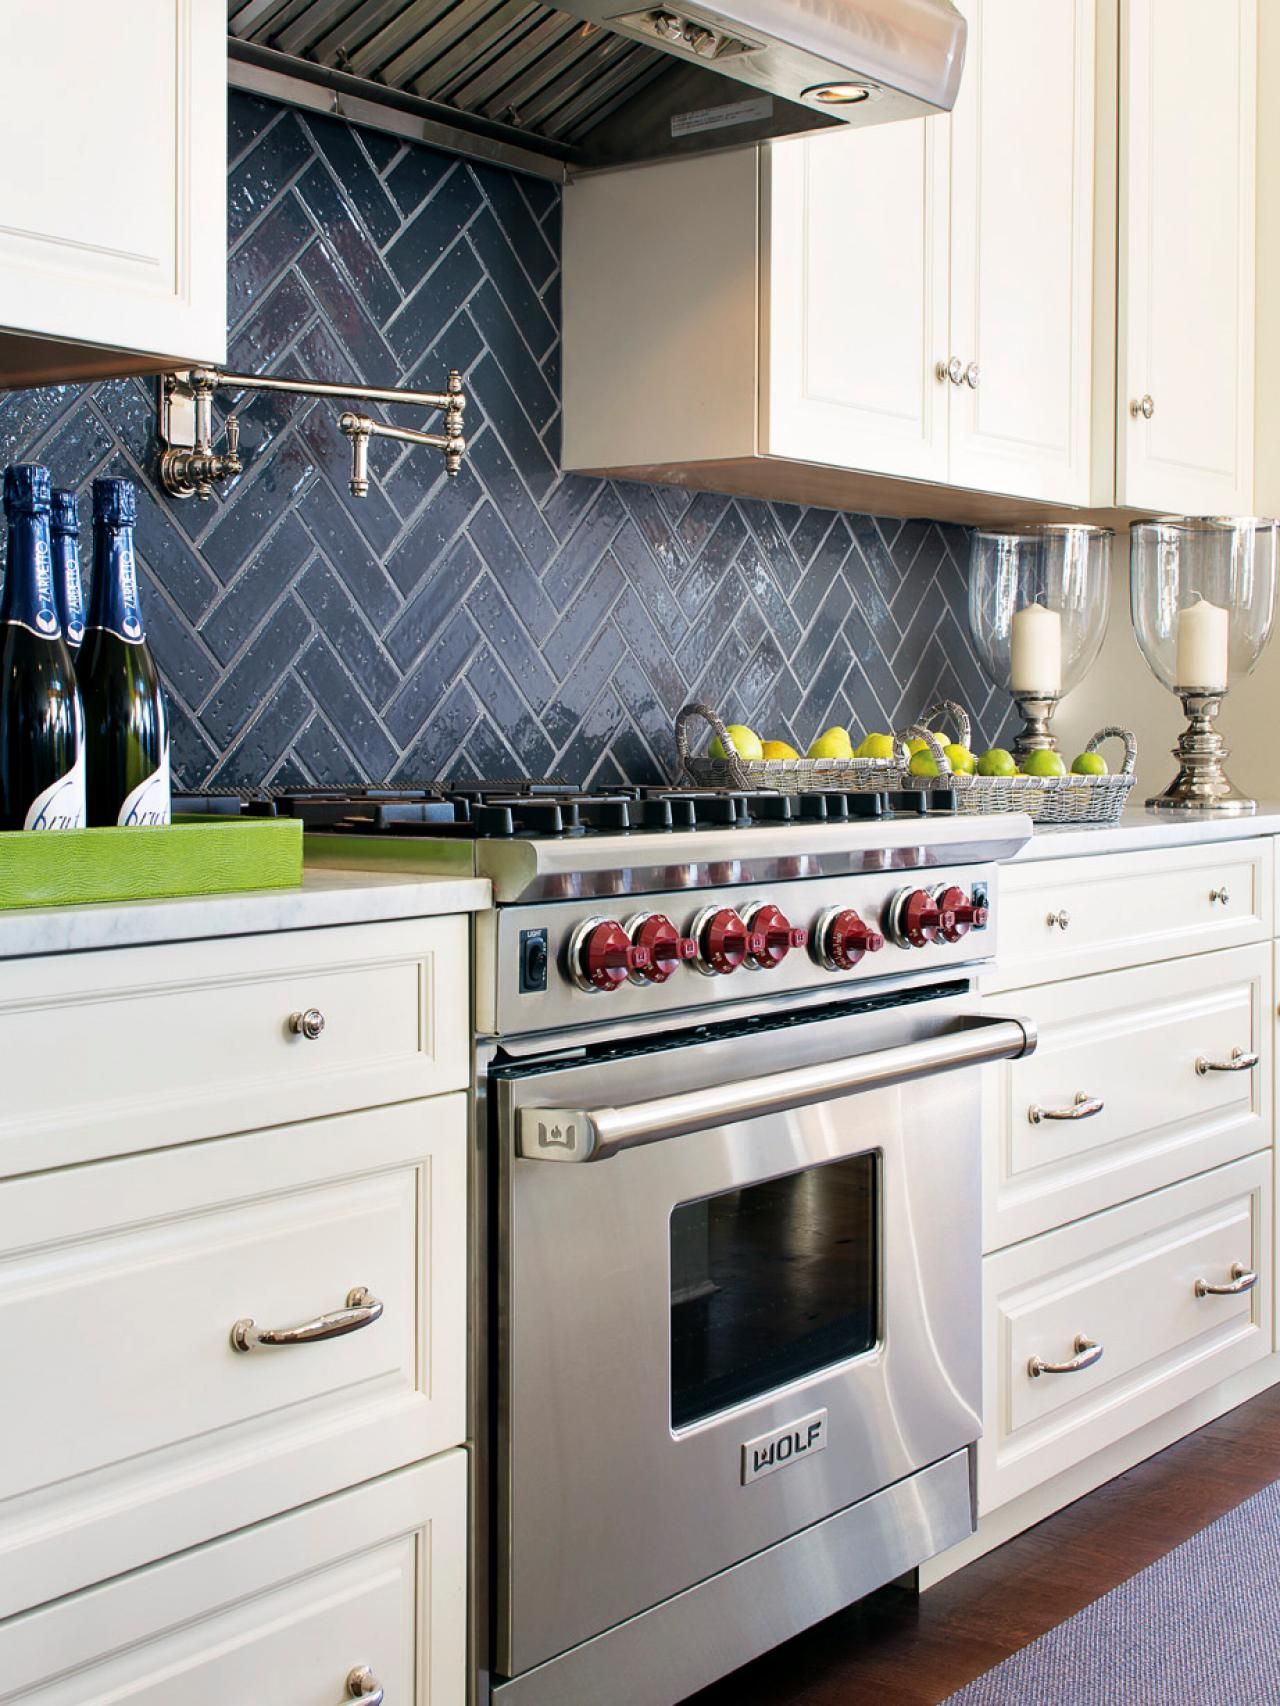 Pictures Of Kitchen Backsplash Ideas From Hgtv Kitchen Ideas